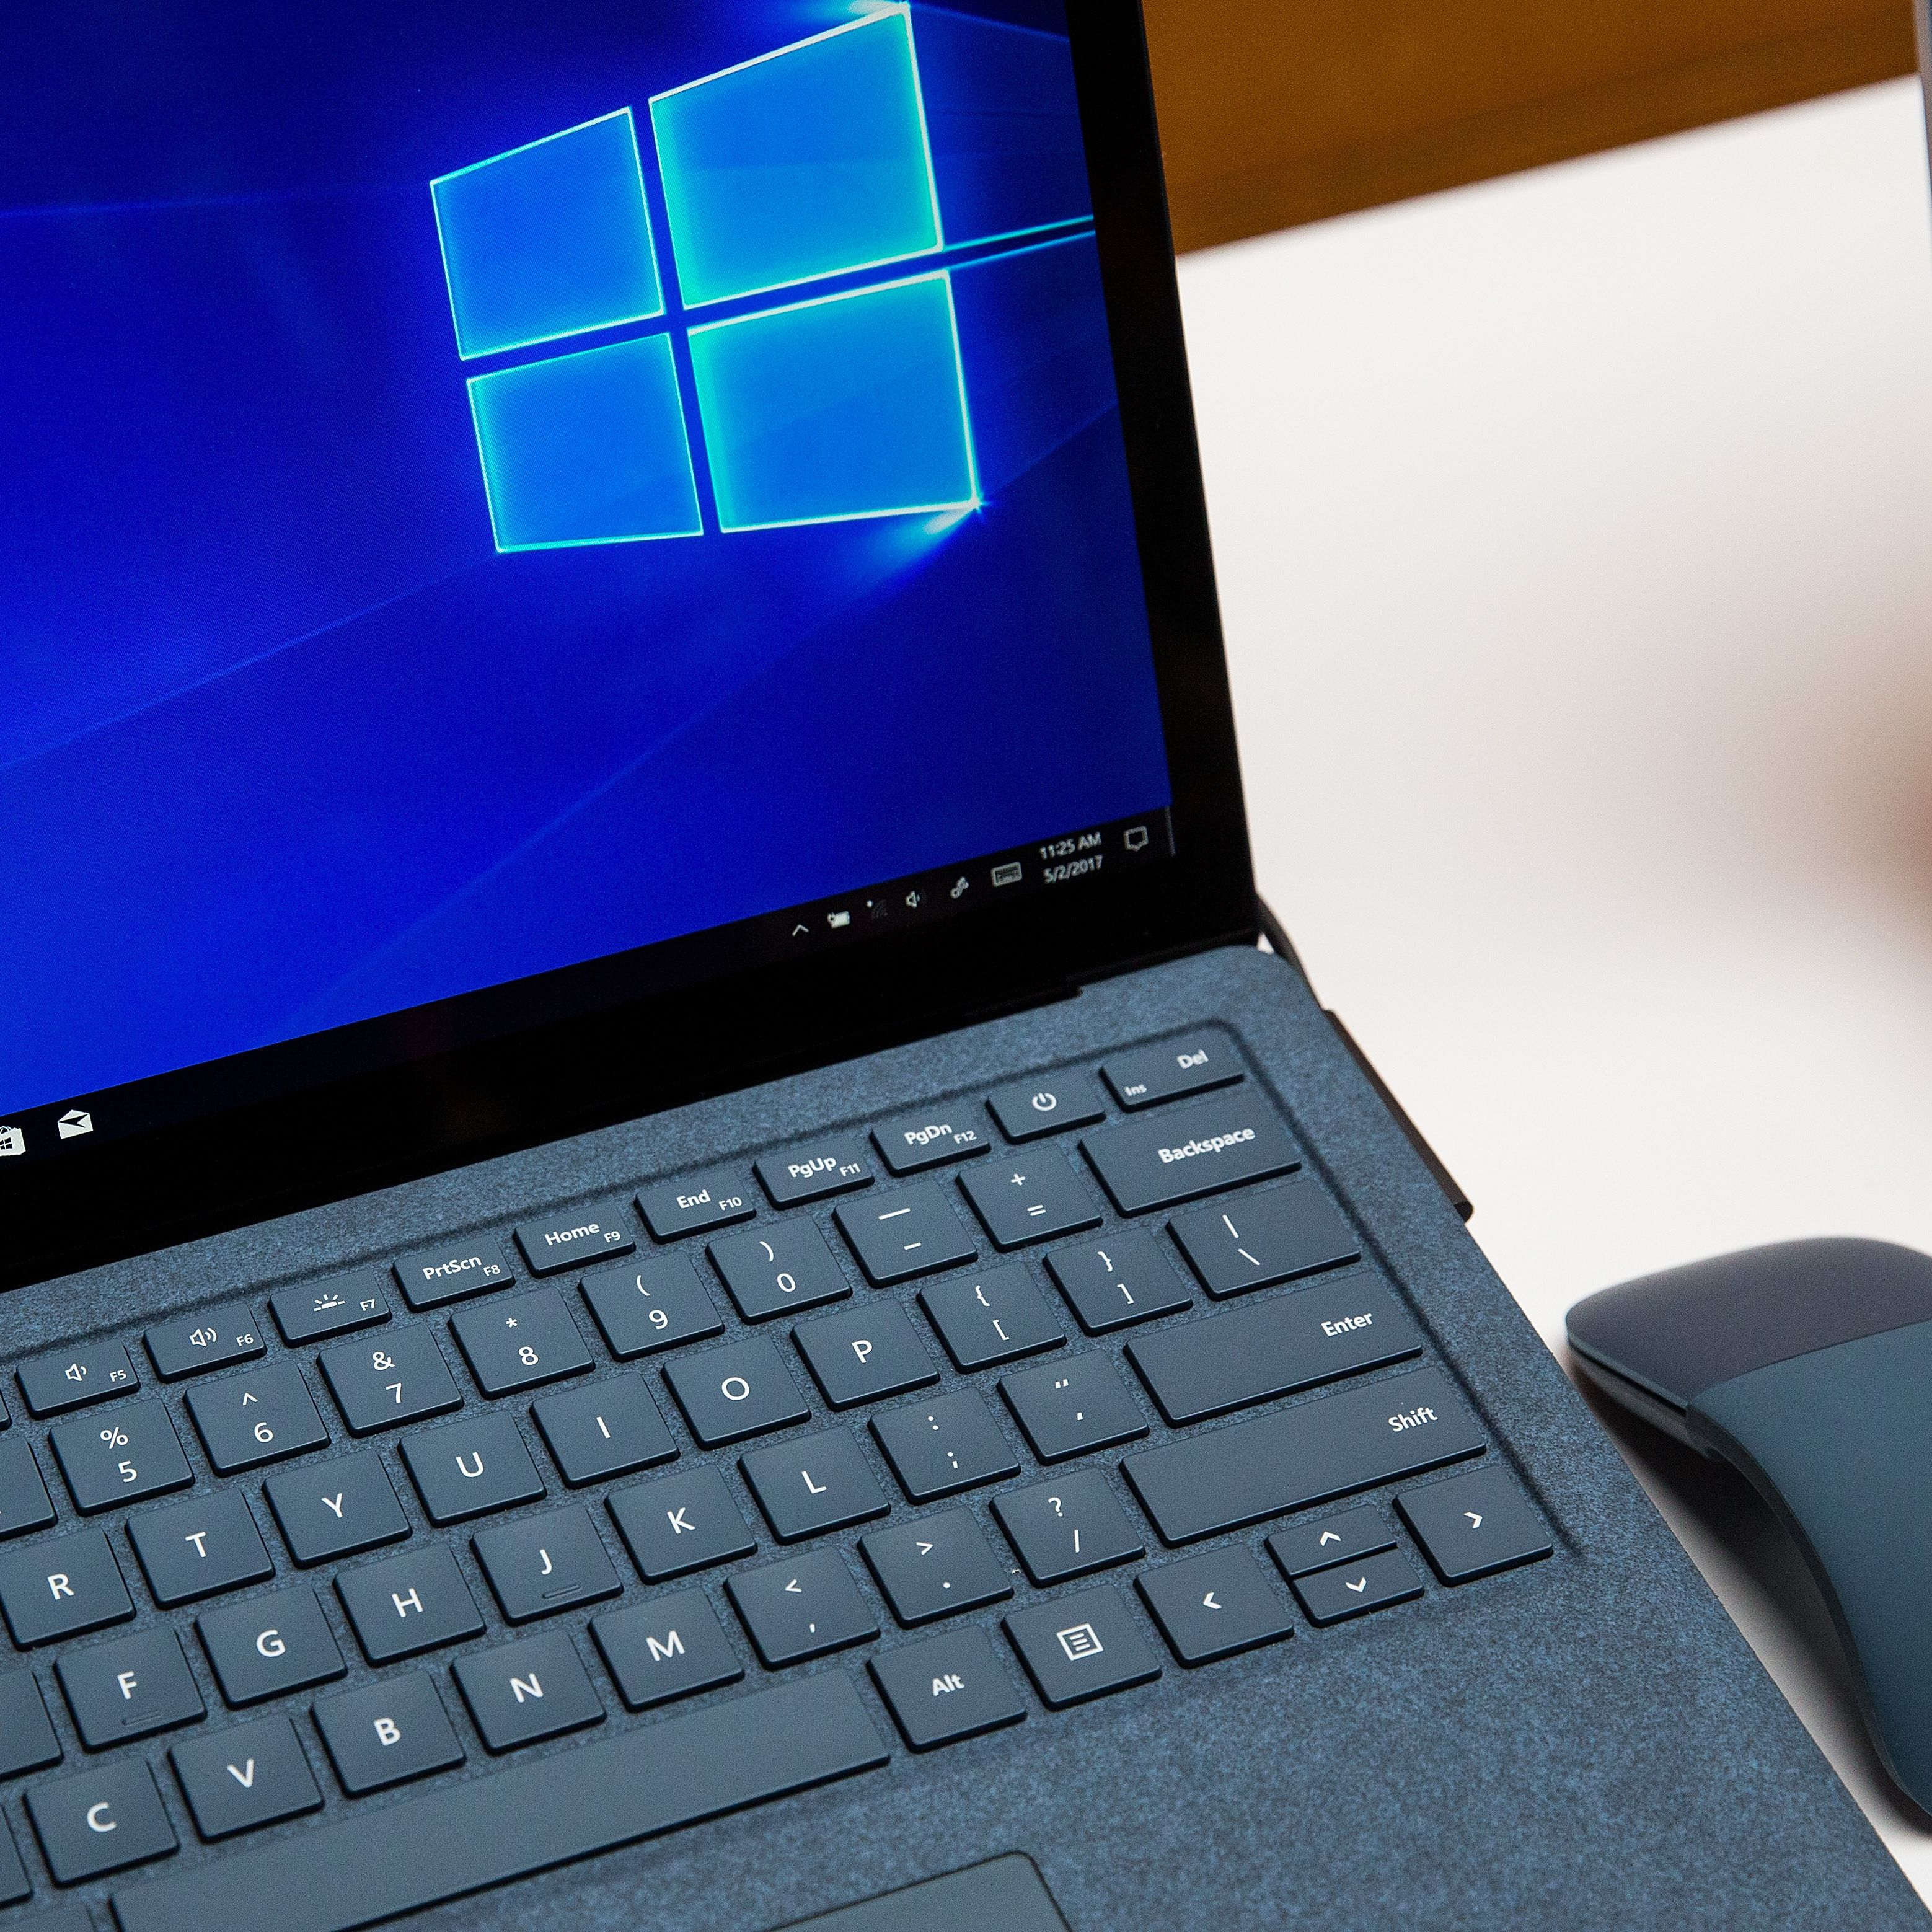 What to Do When Windows 10 Action Center Won't Open